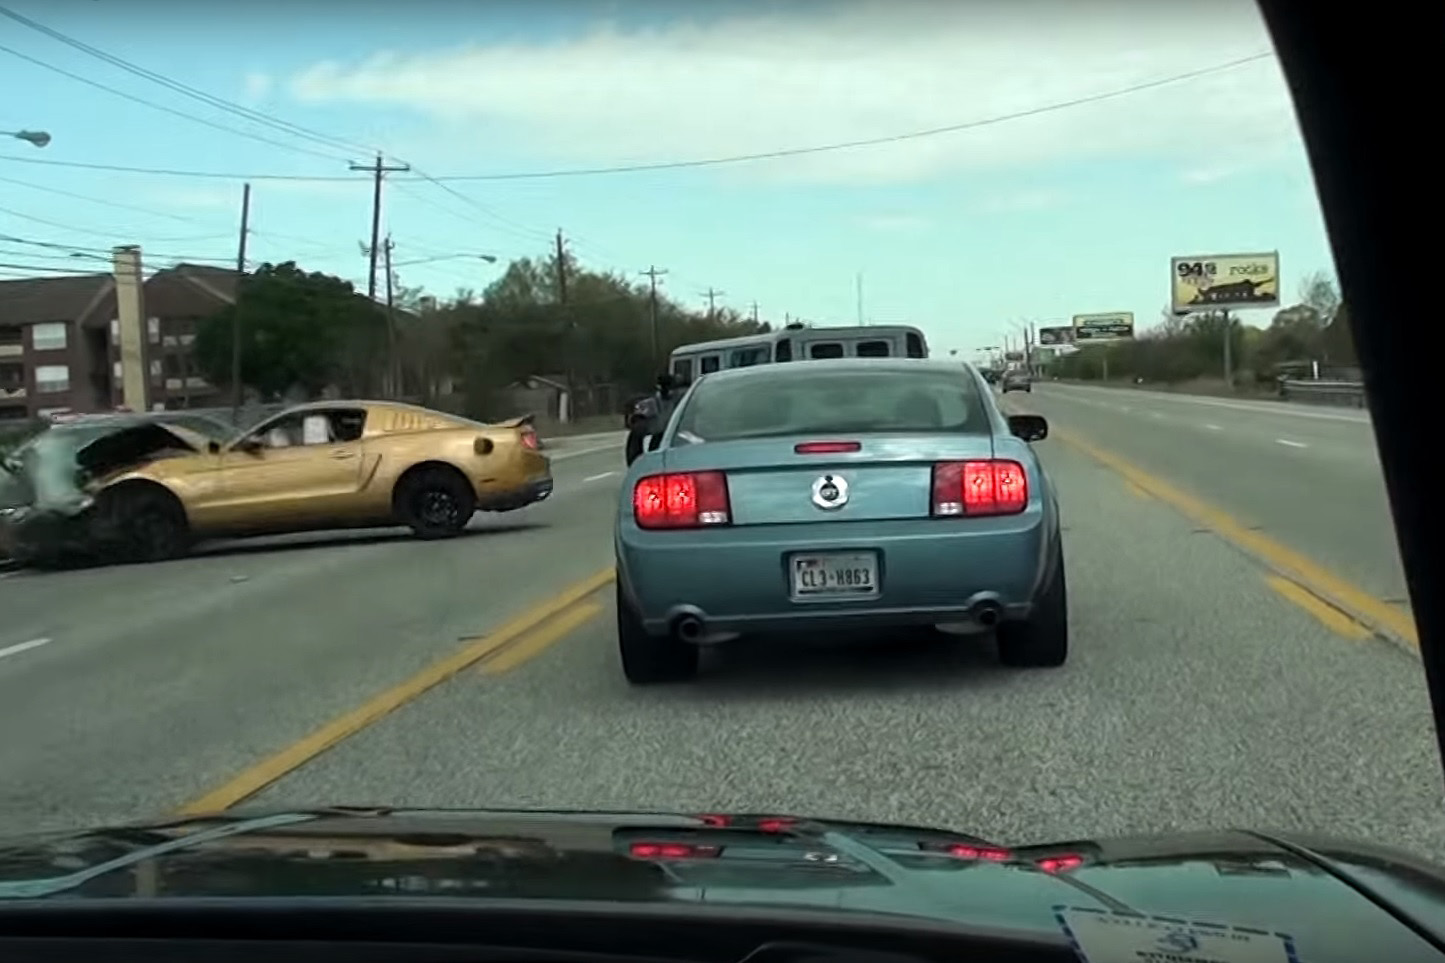 Video: Mustang crosses the road blindly and slams into an oncoming ...